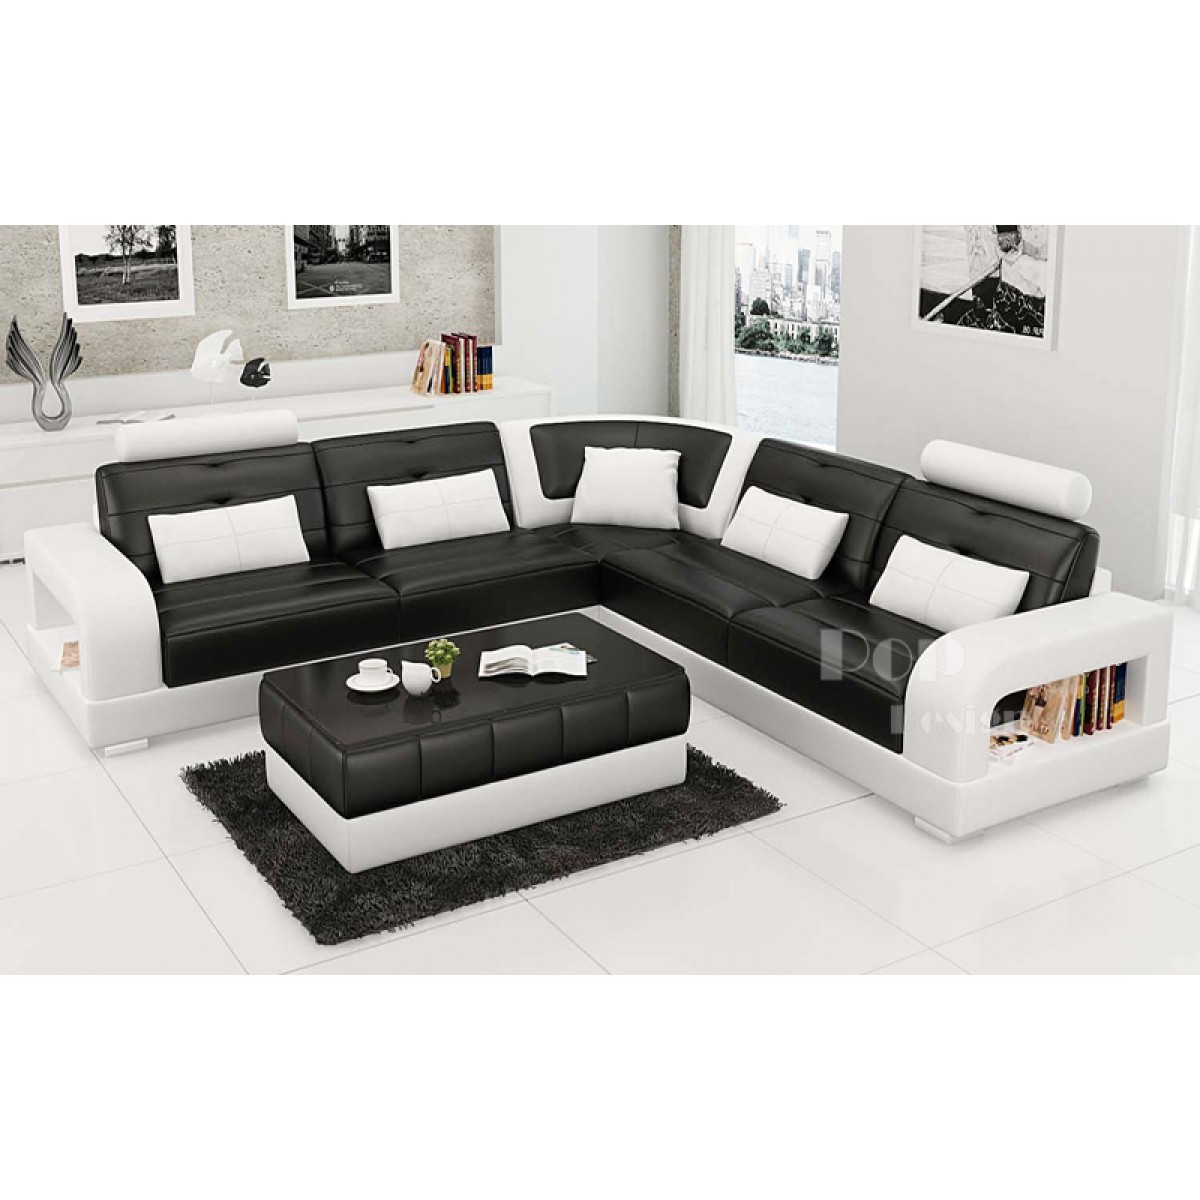 Canap d angle promotion royal sofa - Canape cuir luxe design ...